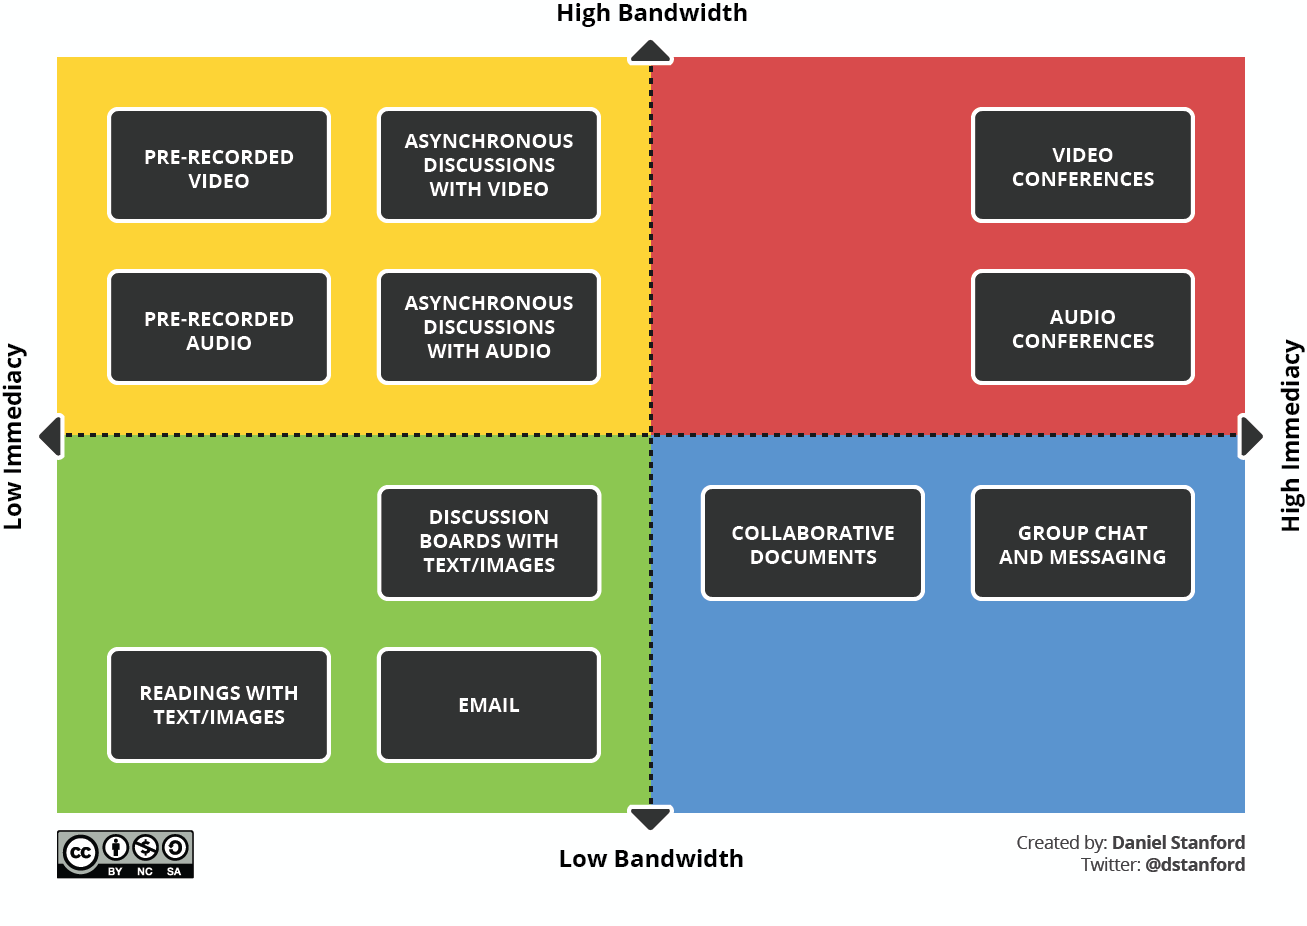 Bandwidth immediacy matrix